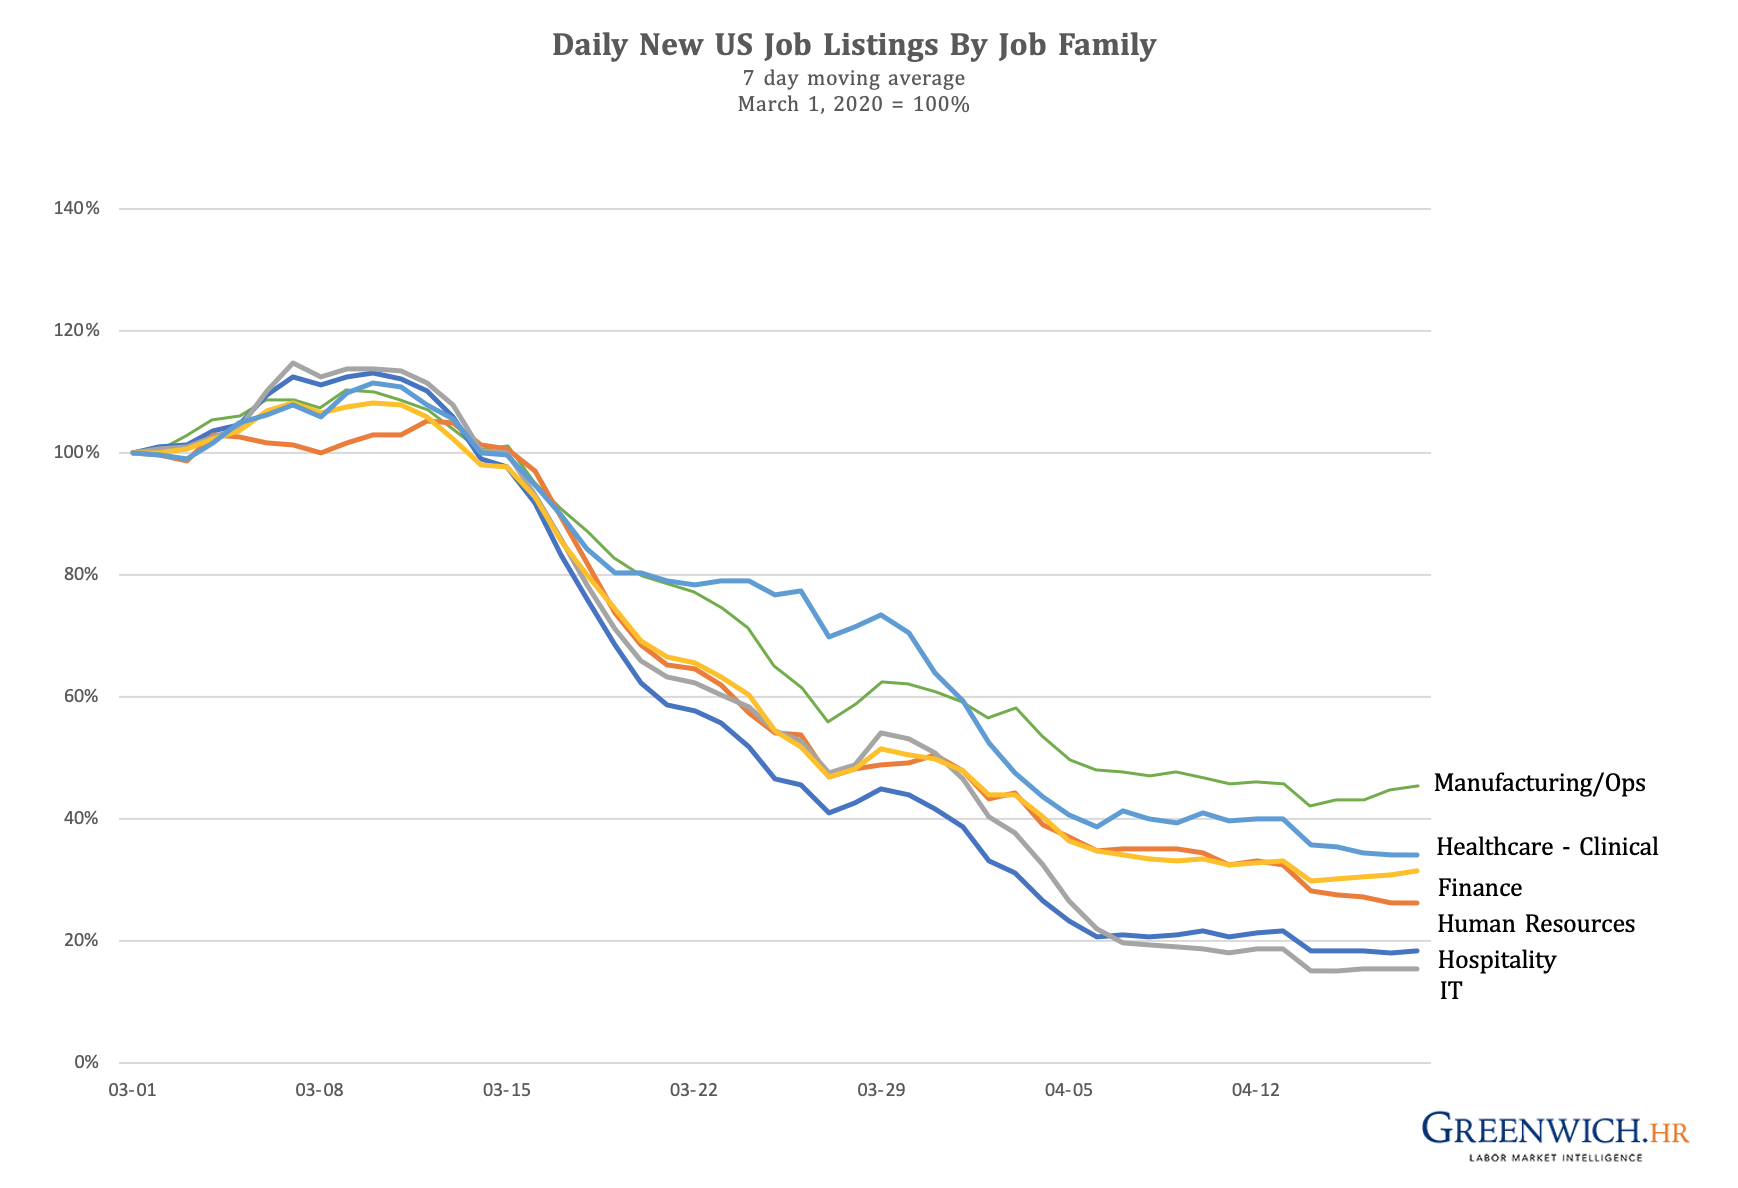 Job Listings For IT Workers Have Fallen 85 Percent in Four Weeks As Companies Pull Back From IT Investments